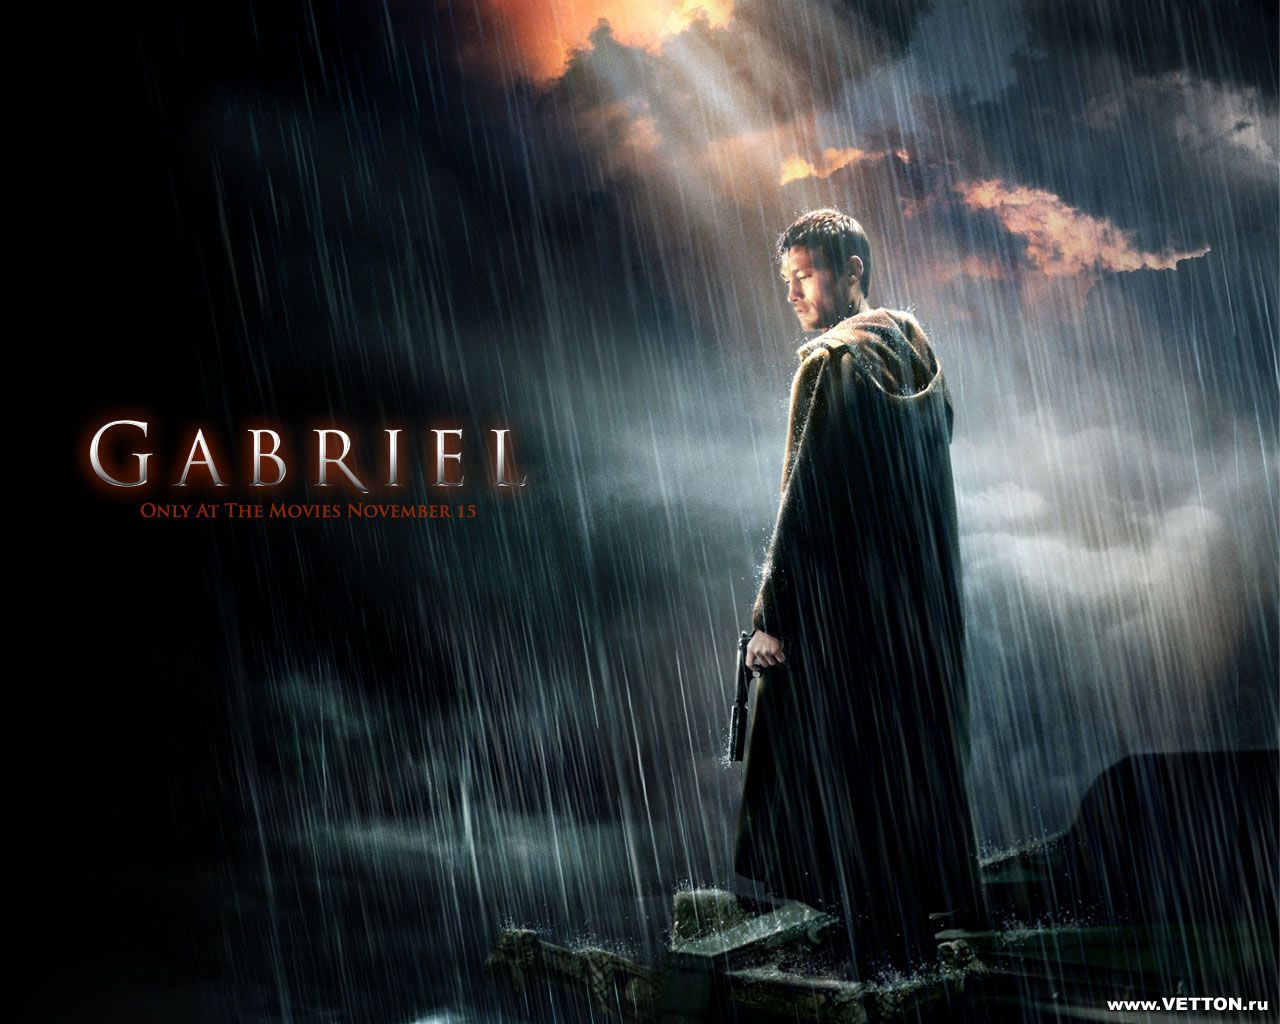 Hollywood Movies Wallpaper 9118 Hd Wallpapers in Movies   Imagescicom 1280x1024